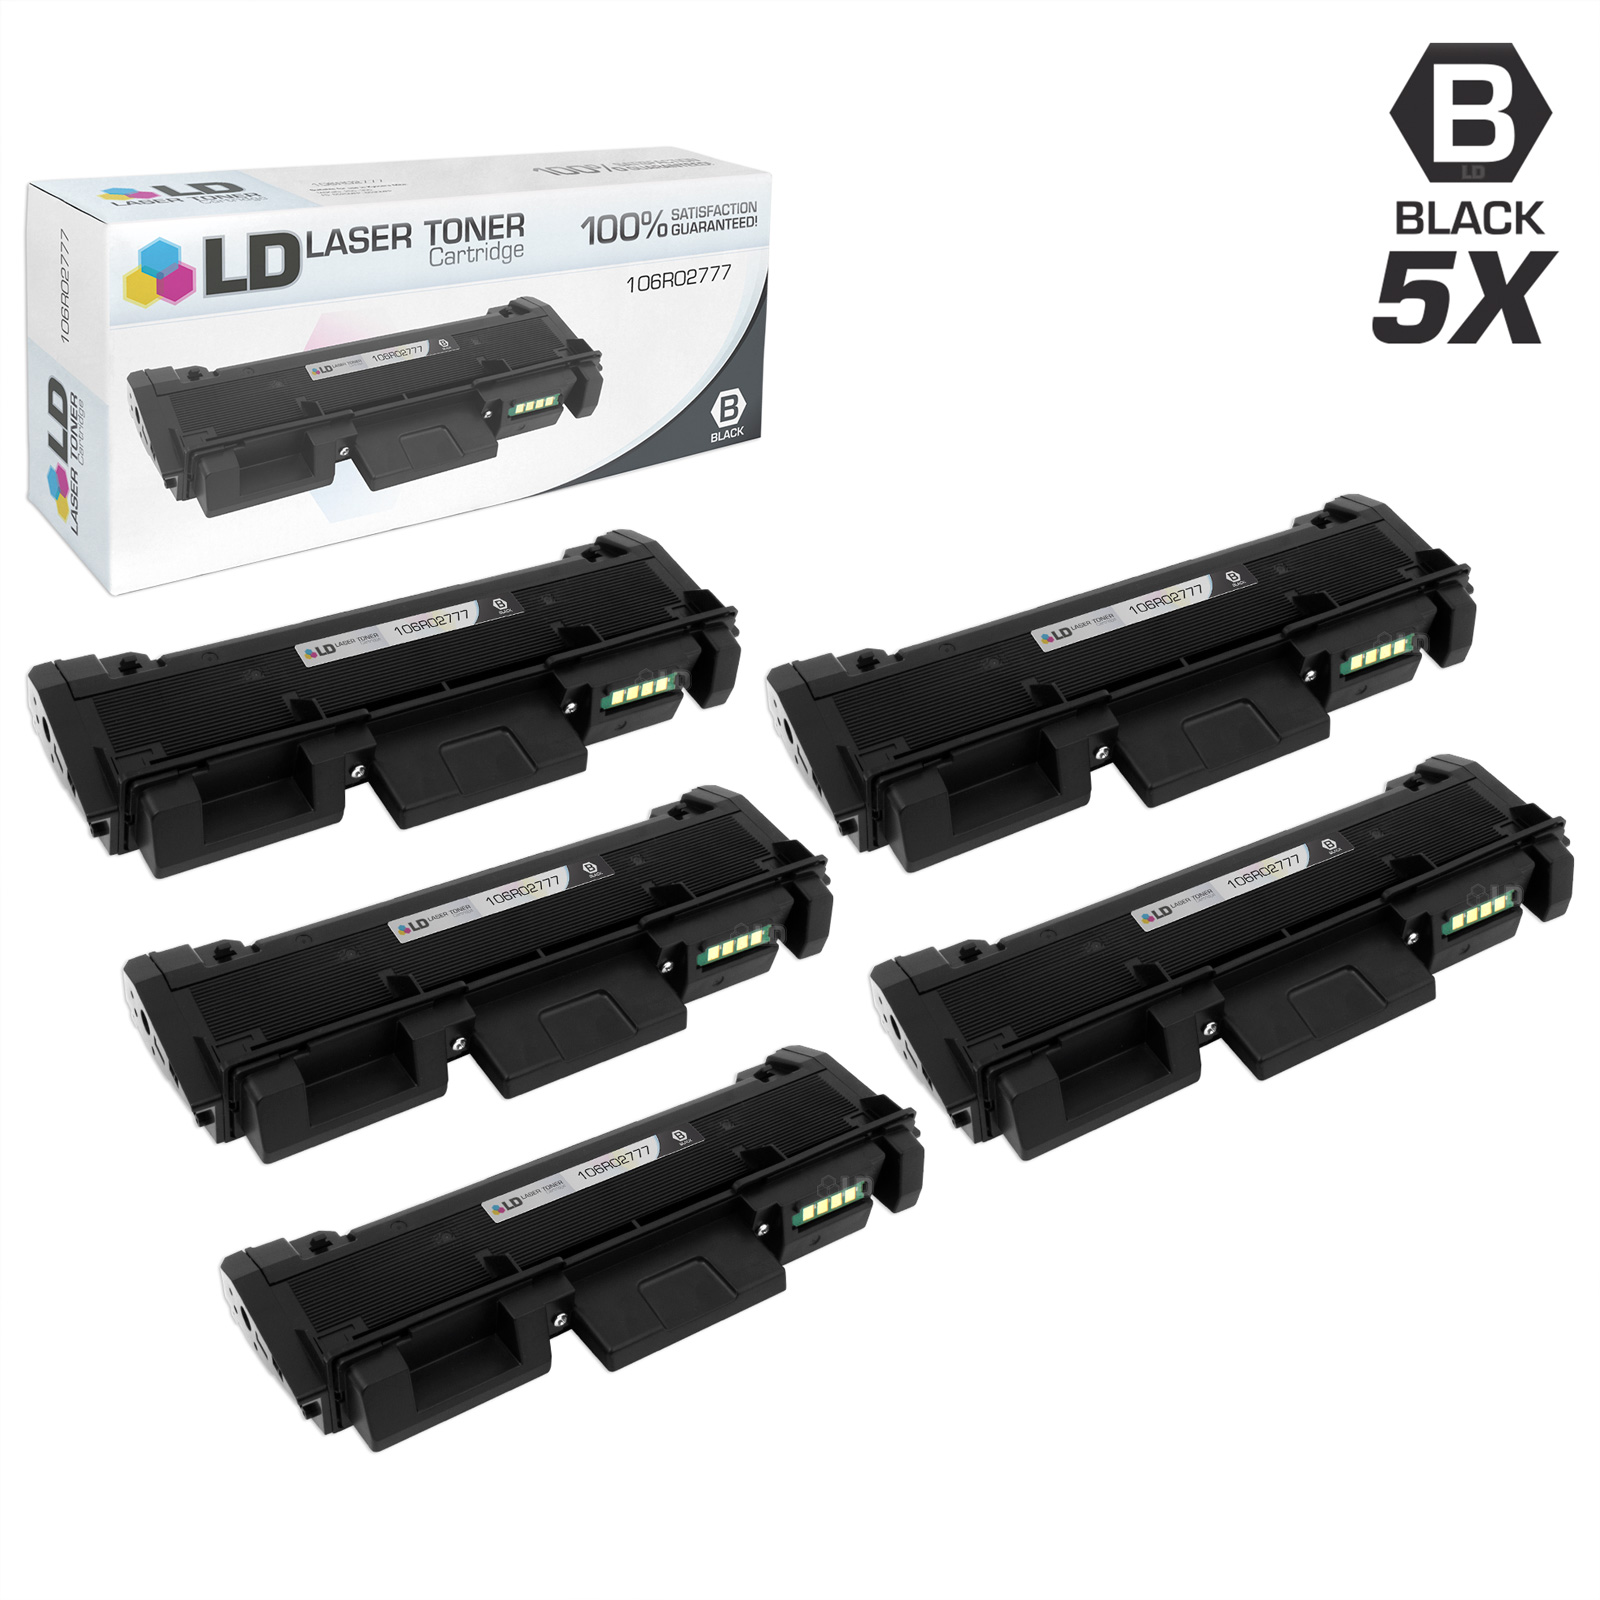 MICR Check WC 3215 Toner Cartridge for Xerox Phaser 3260 106R02777 3225